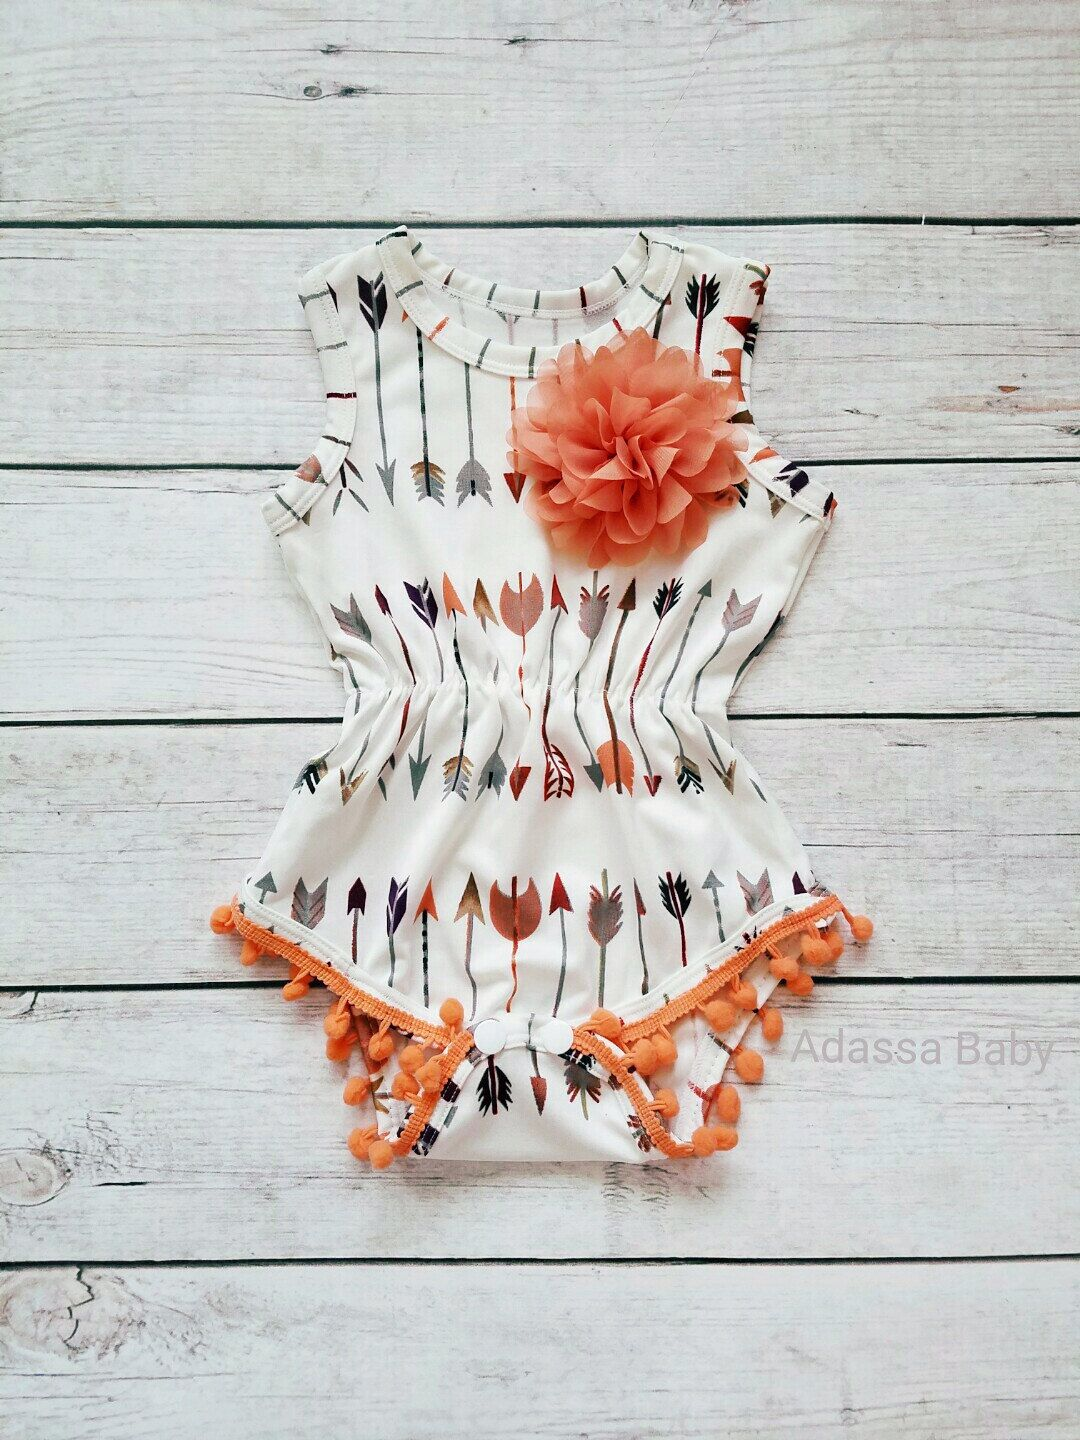 ae2b4bf03 Show your little princess off in this super cute peach and cream pom pom  romper embellished